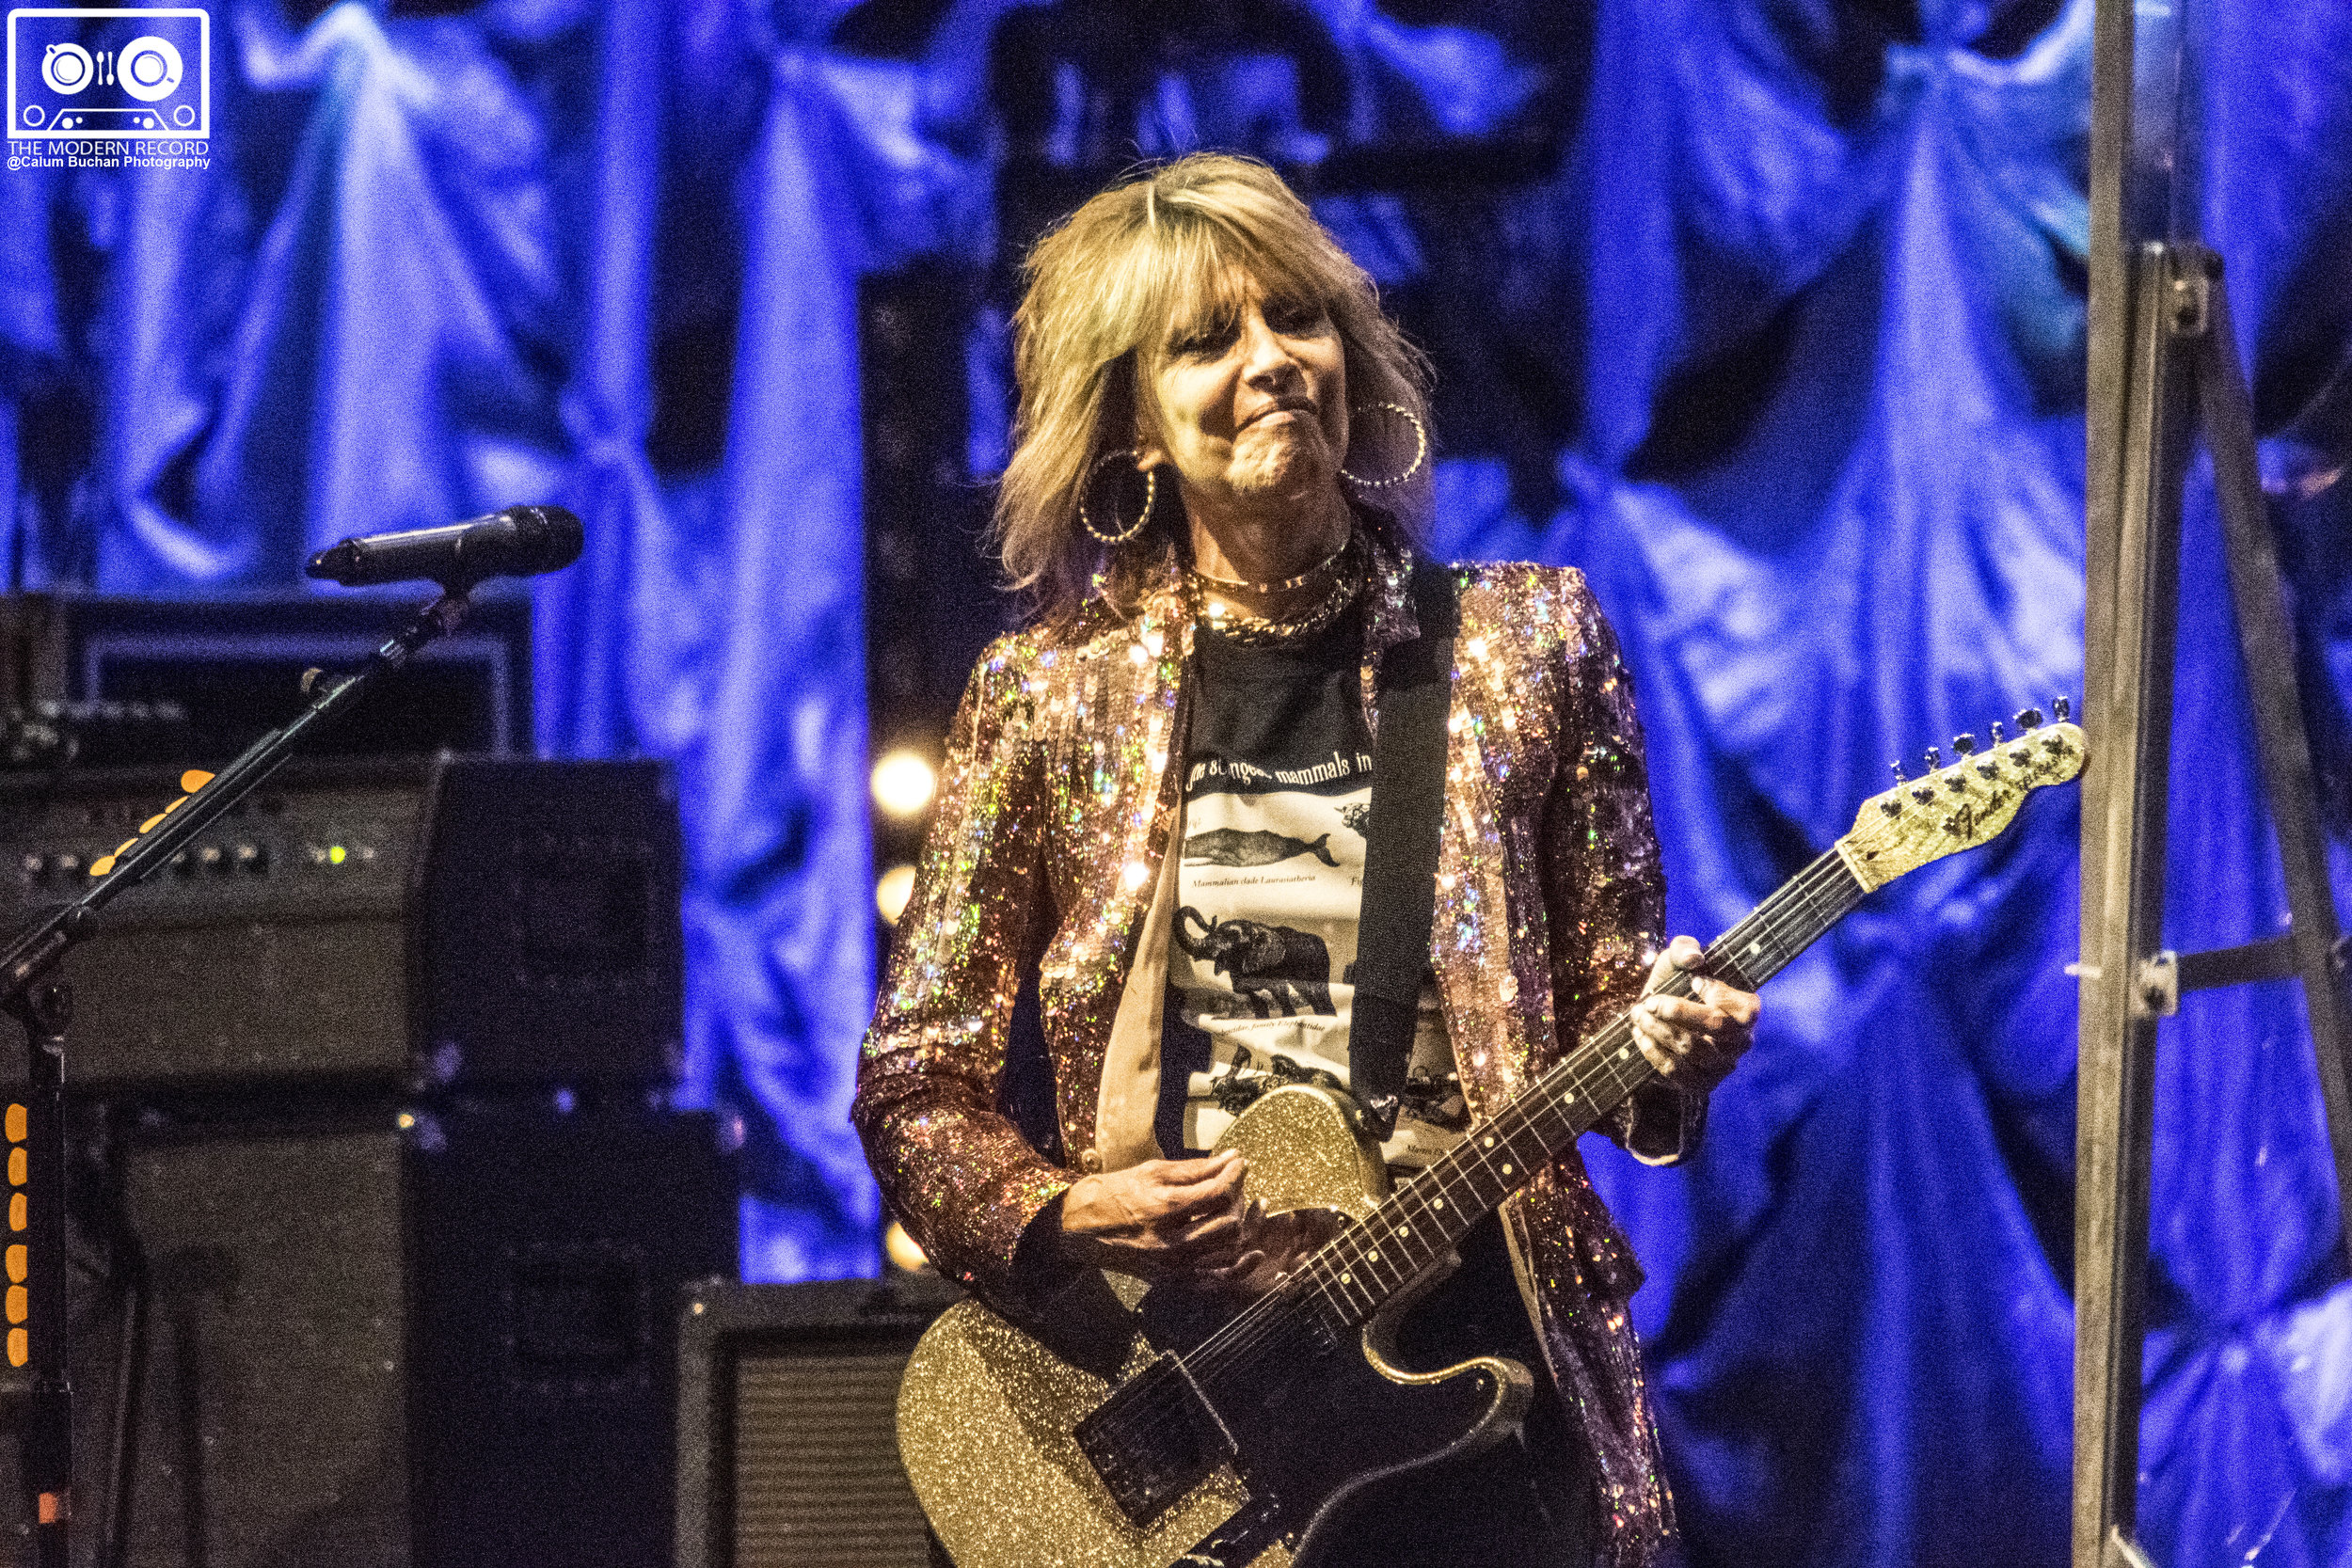 THE PRETENDERS ROCKING EDINBURGH'S USHER HALL AS PART OF THEIR 2017 UK TOUR - 03/10/2017  PICTURE BY: CALUM BUCHAN PHOTOGRAPHY